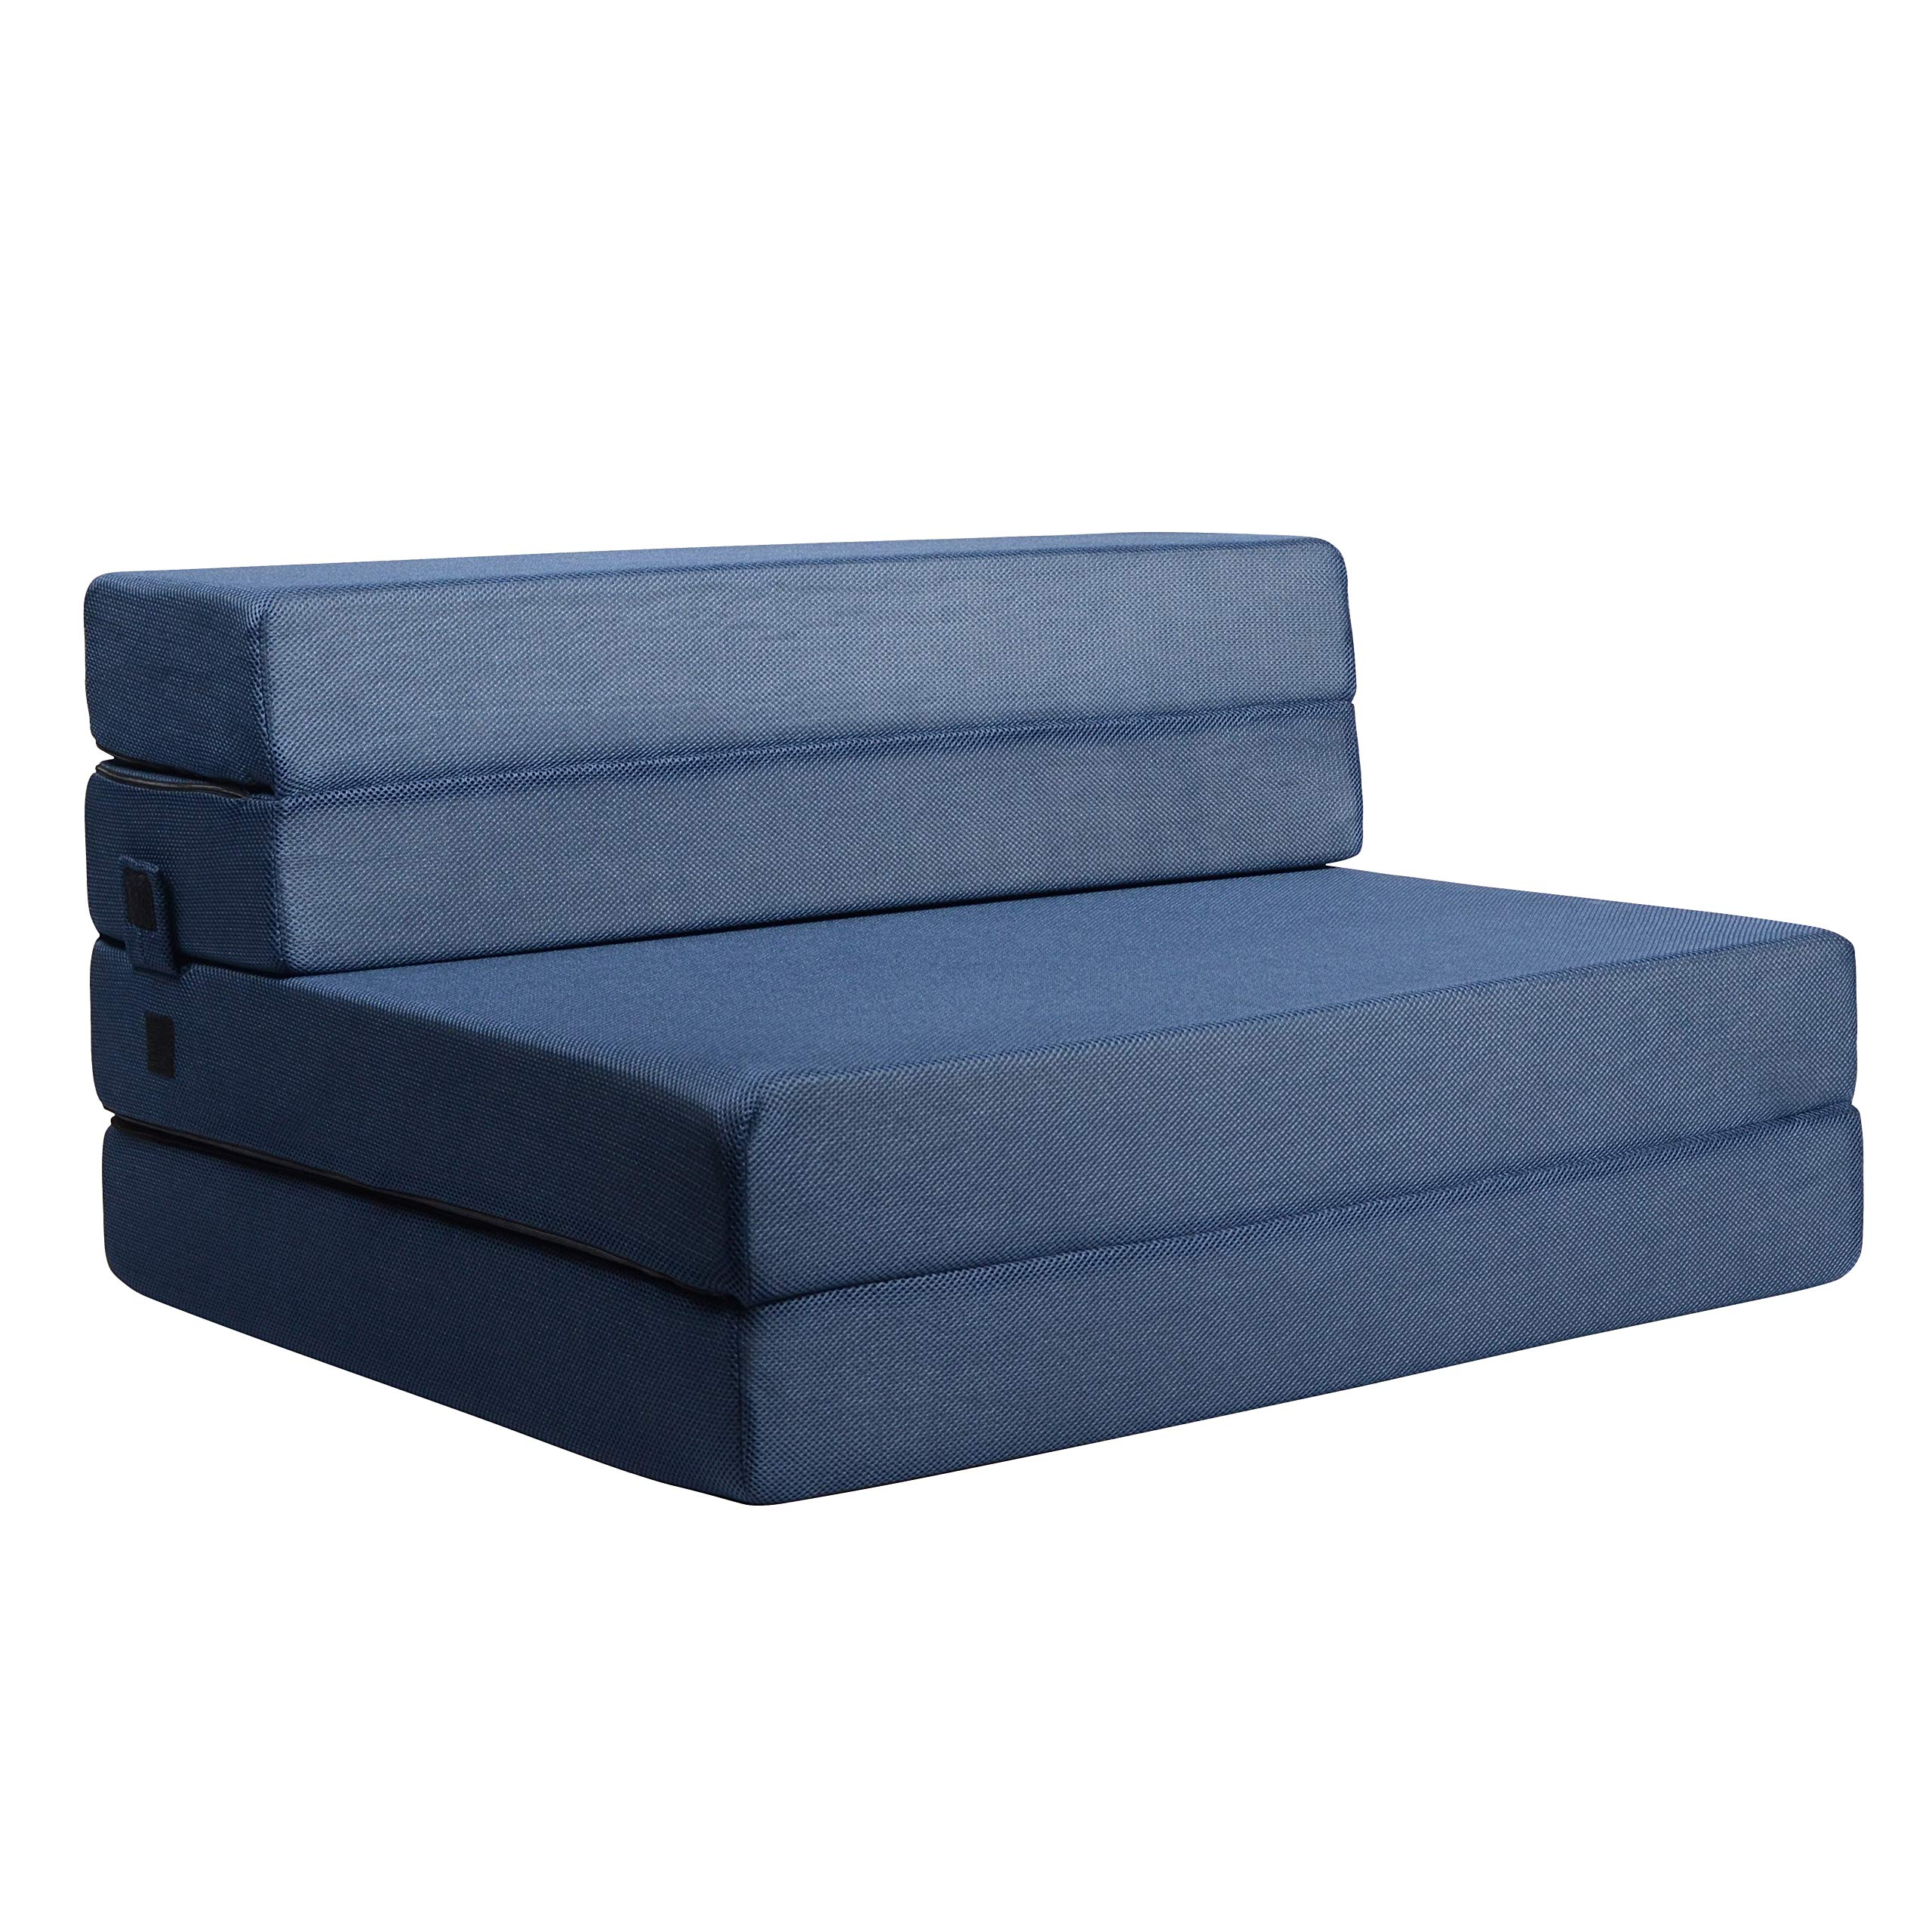 - Milliard Tri-Fold Foam Folding Mattress And Sofa Bed For Guests